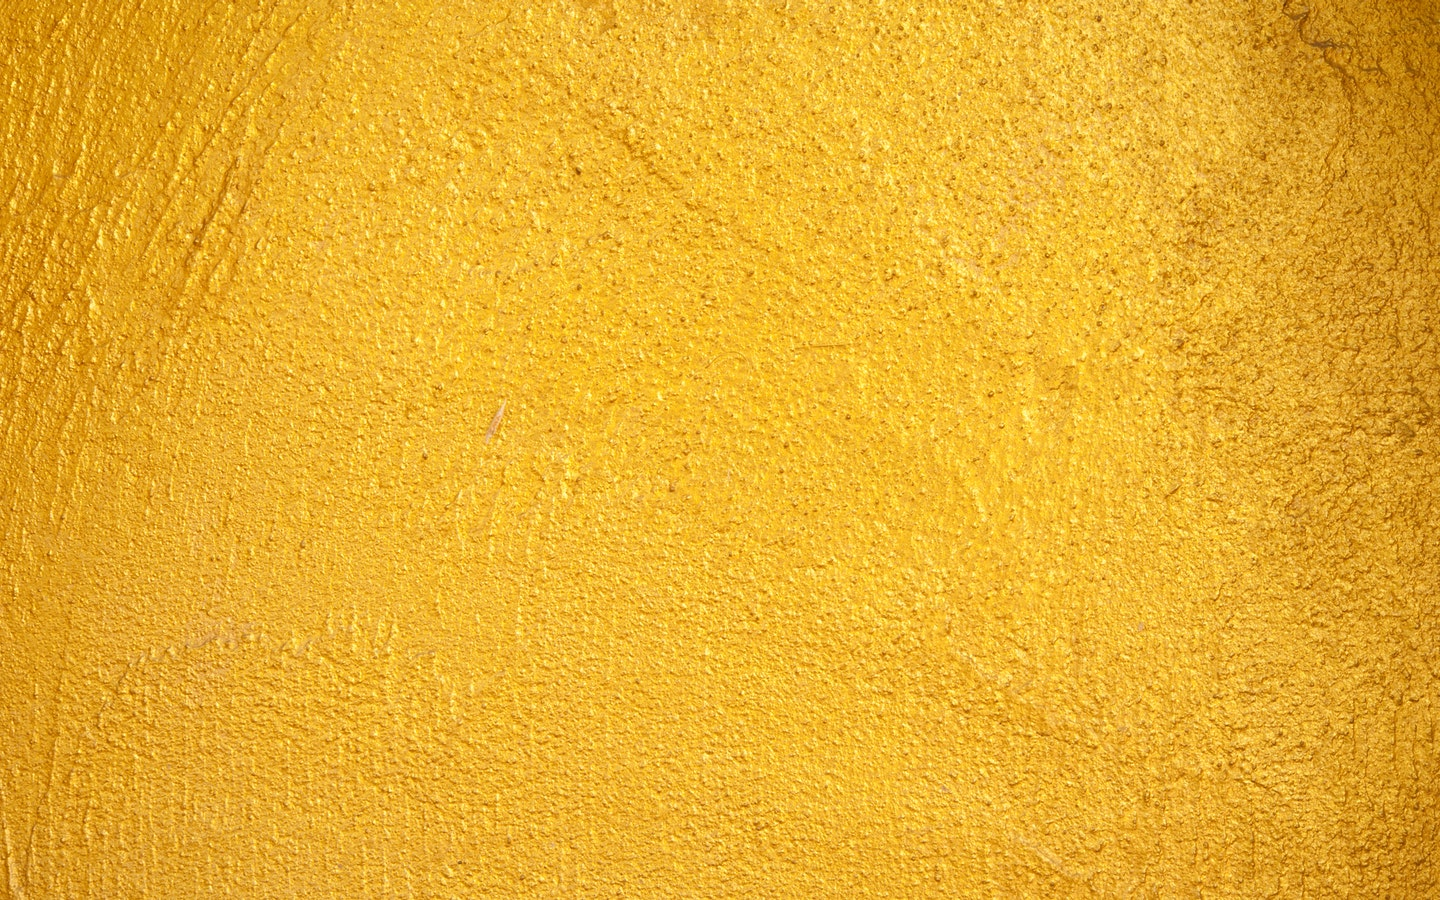 Colors such as green or yellow can improve productivity